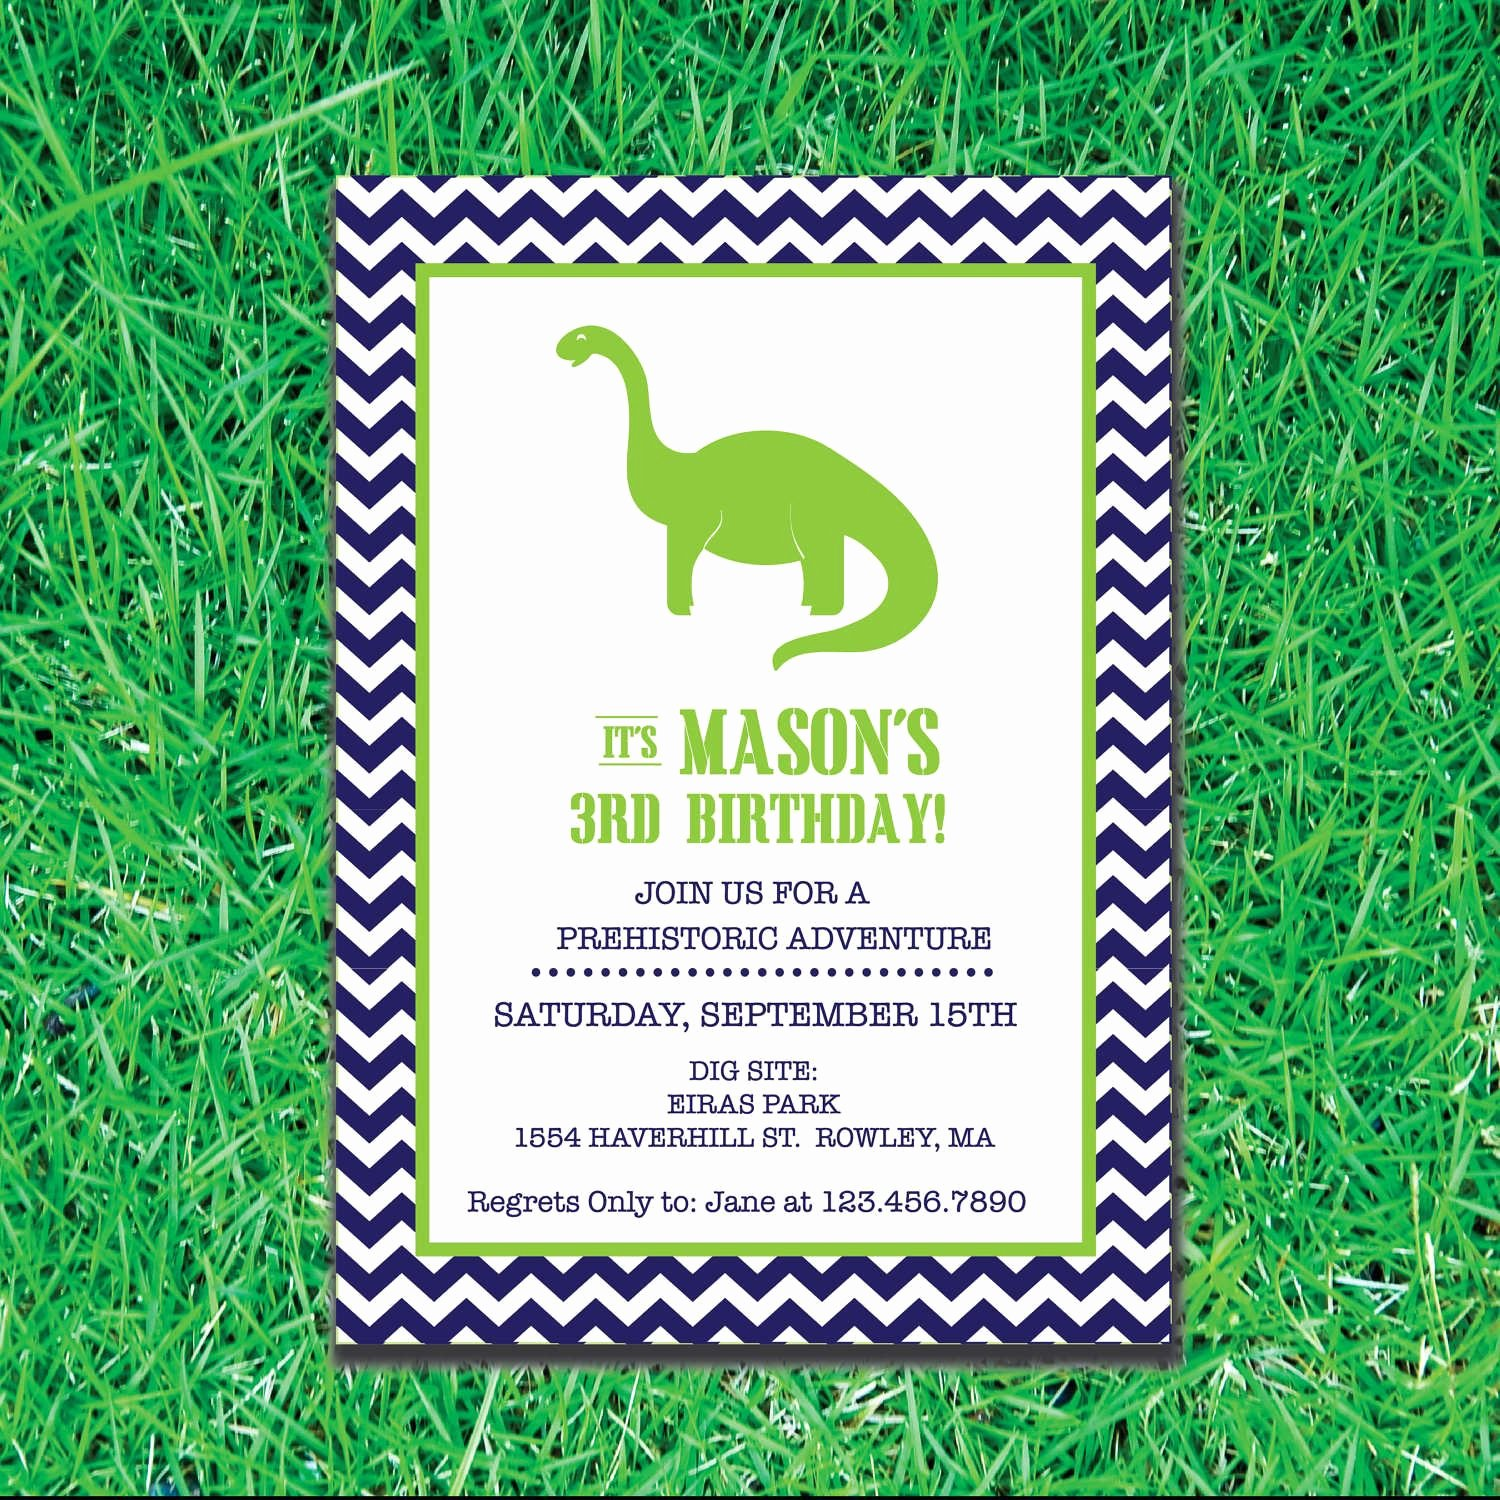 Printable Dinosaur Birthday Invitations Beautiful Free Printable Dinosaur Birthday Party Invitations Luke S 3rd Birthday Pinterest